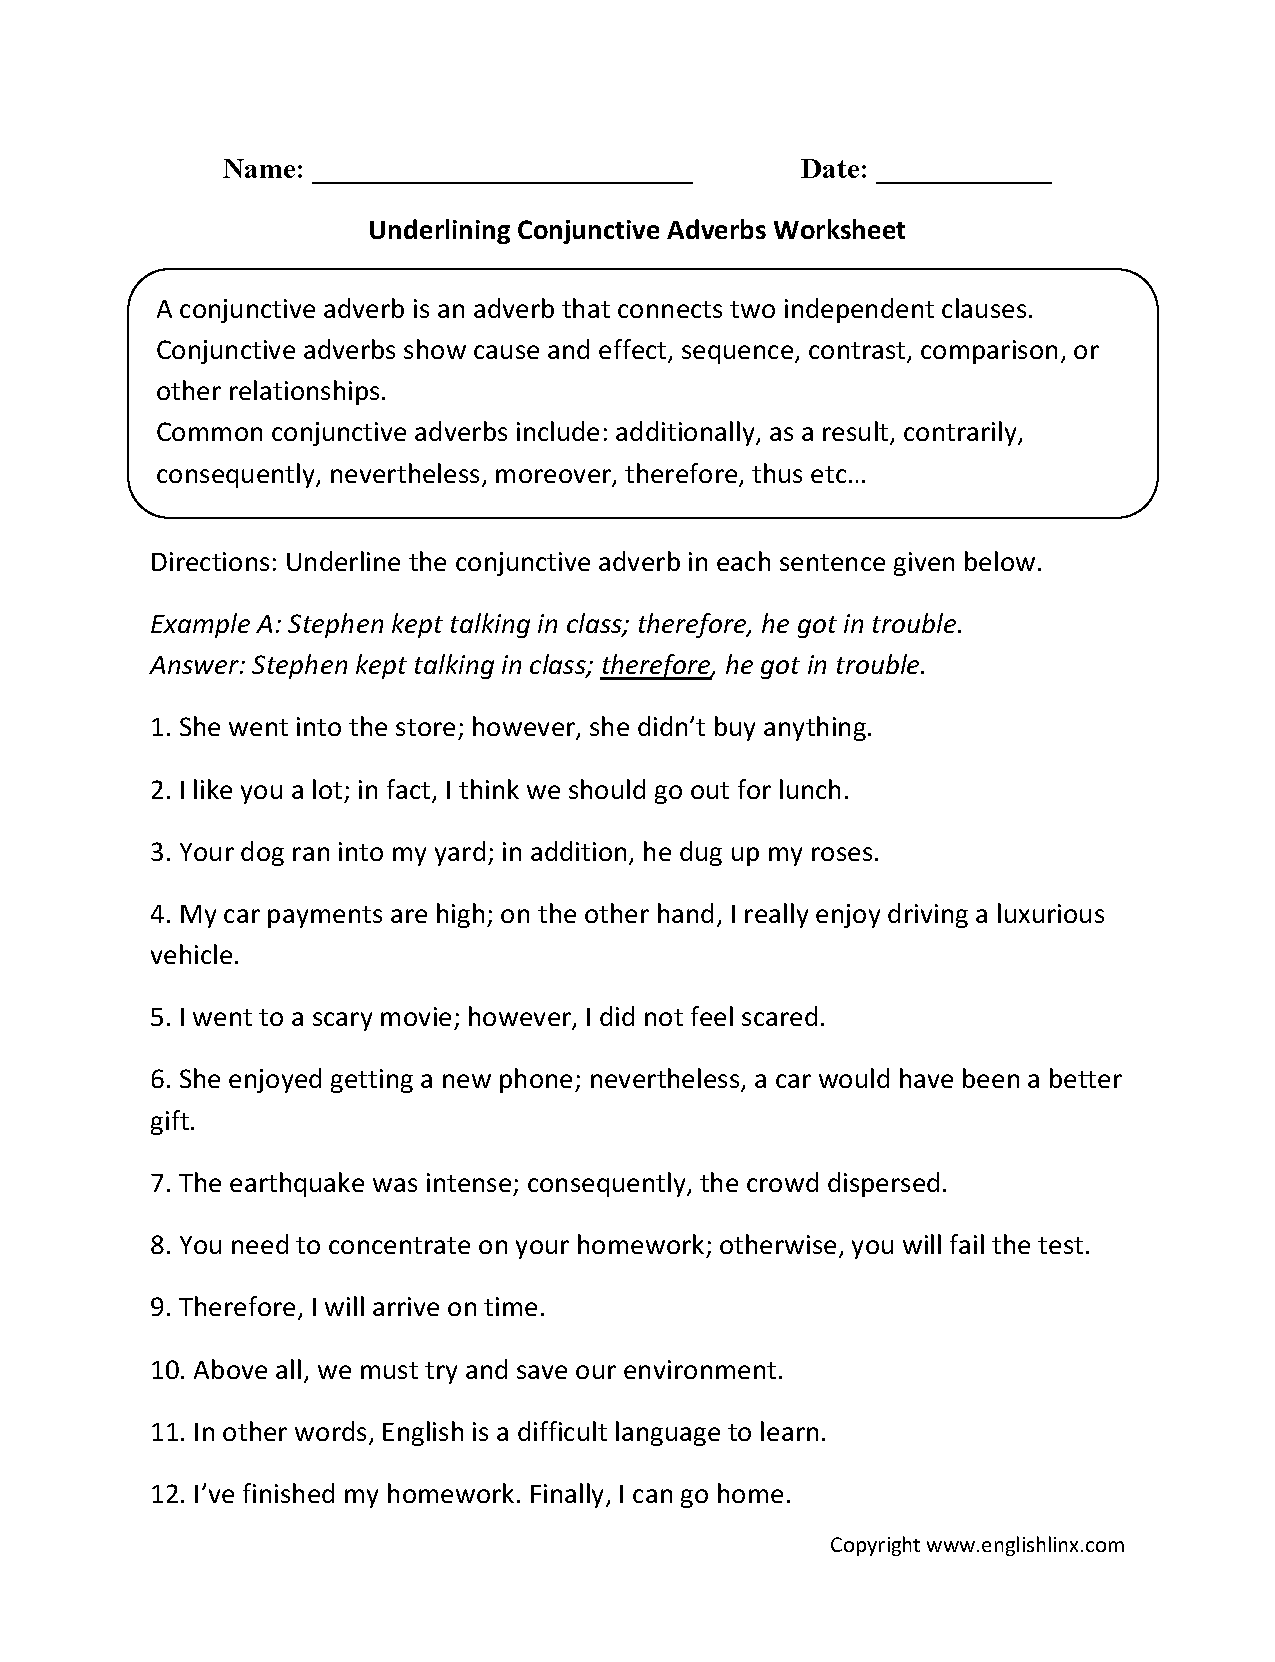 Weirdmailus  Stunning Englishlinxcom  Conjunctions Worksheets With Marvelous Worksheet With Awesome Time Worksheets For First Grade Also Math Graphs Worksheets In Addition Mental Health Wellness Worksheets And Work And Power Problems Worksheet As Well As The Crucible Worksheet Additionally Printable Worksheets For First Grade From Englishlinxcom With Weirdmailus  Marvelous Englishlinxcom  Conjunctions Worksheets With Awesome Worksheet And Stunning Time Worksheets For First Grade Also Math Graphs Worksheets In Addition Mental Health Wellness Worksheets From Englishlinxcom